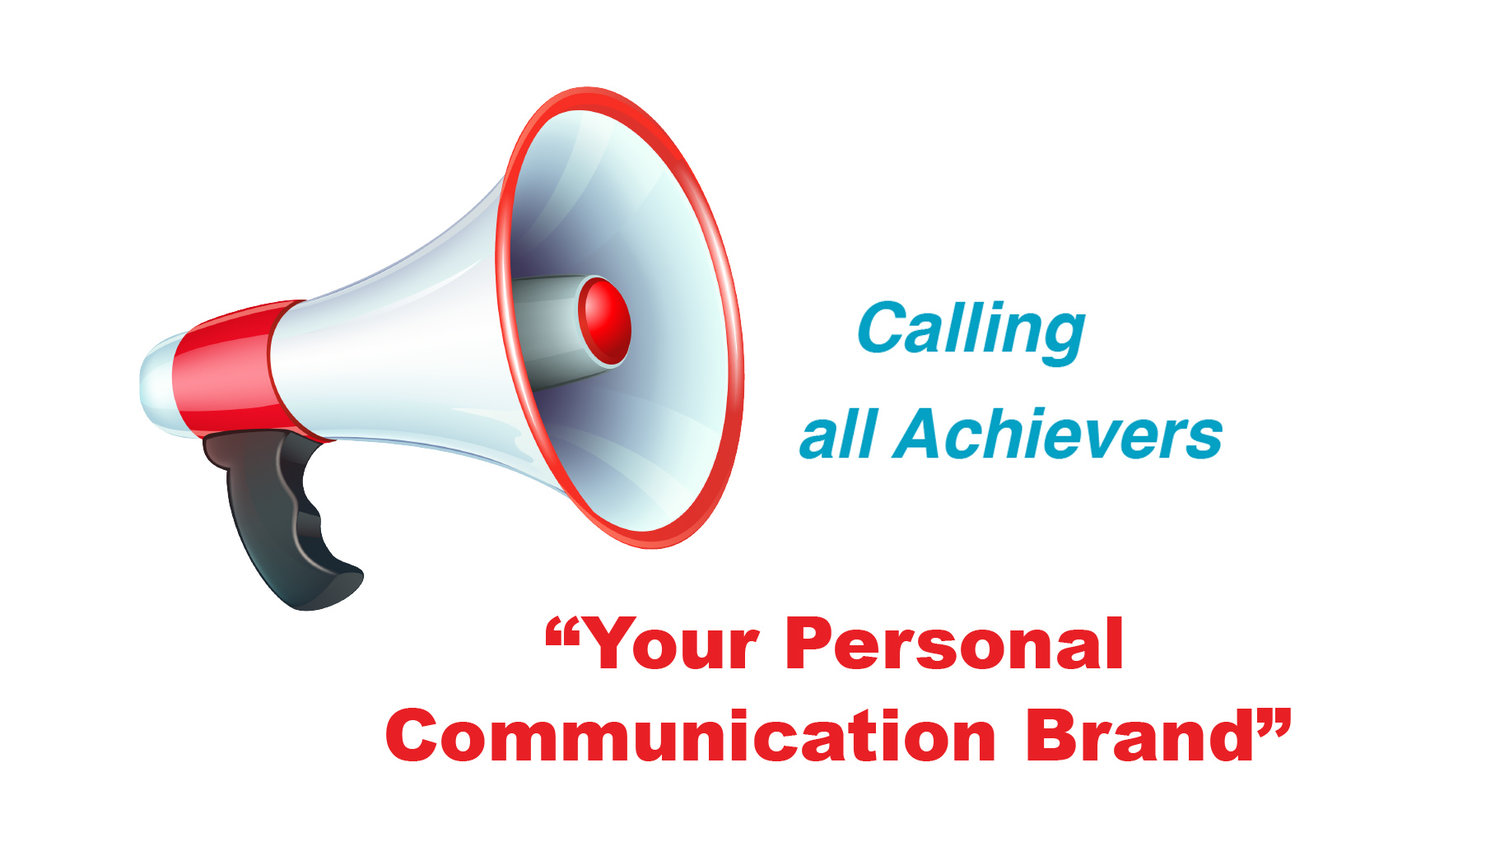 Calling-all-achievers-workshop-graphic.jpg